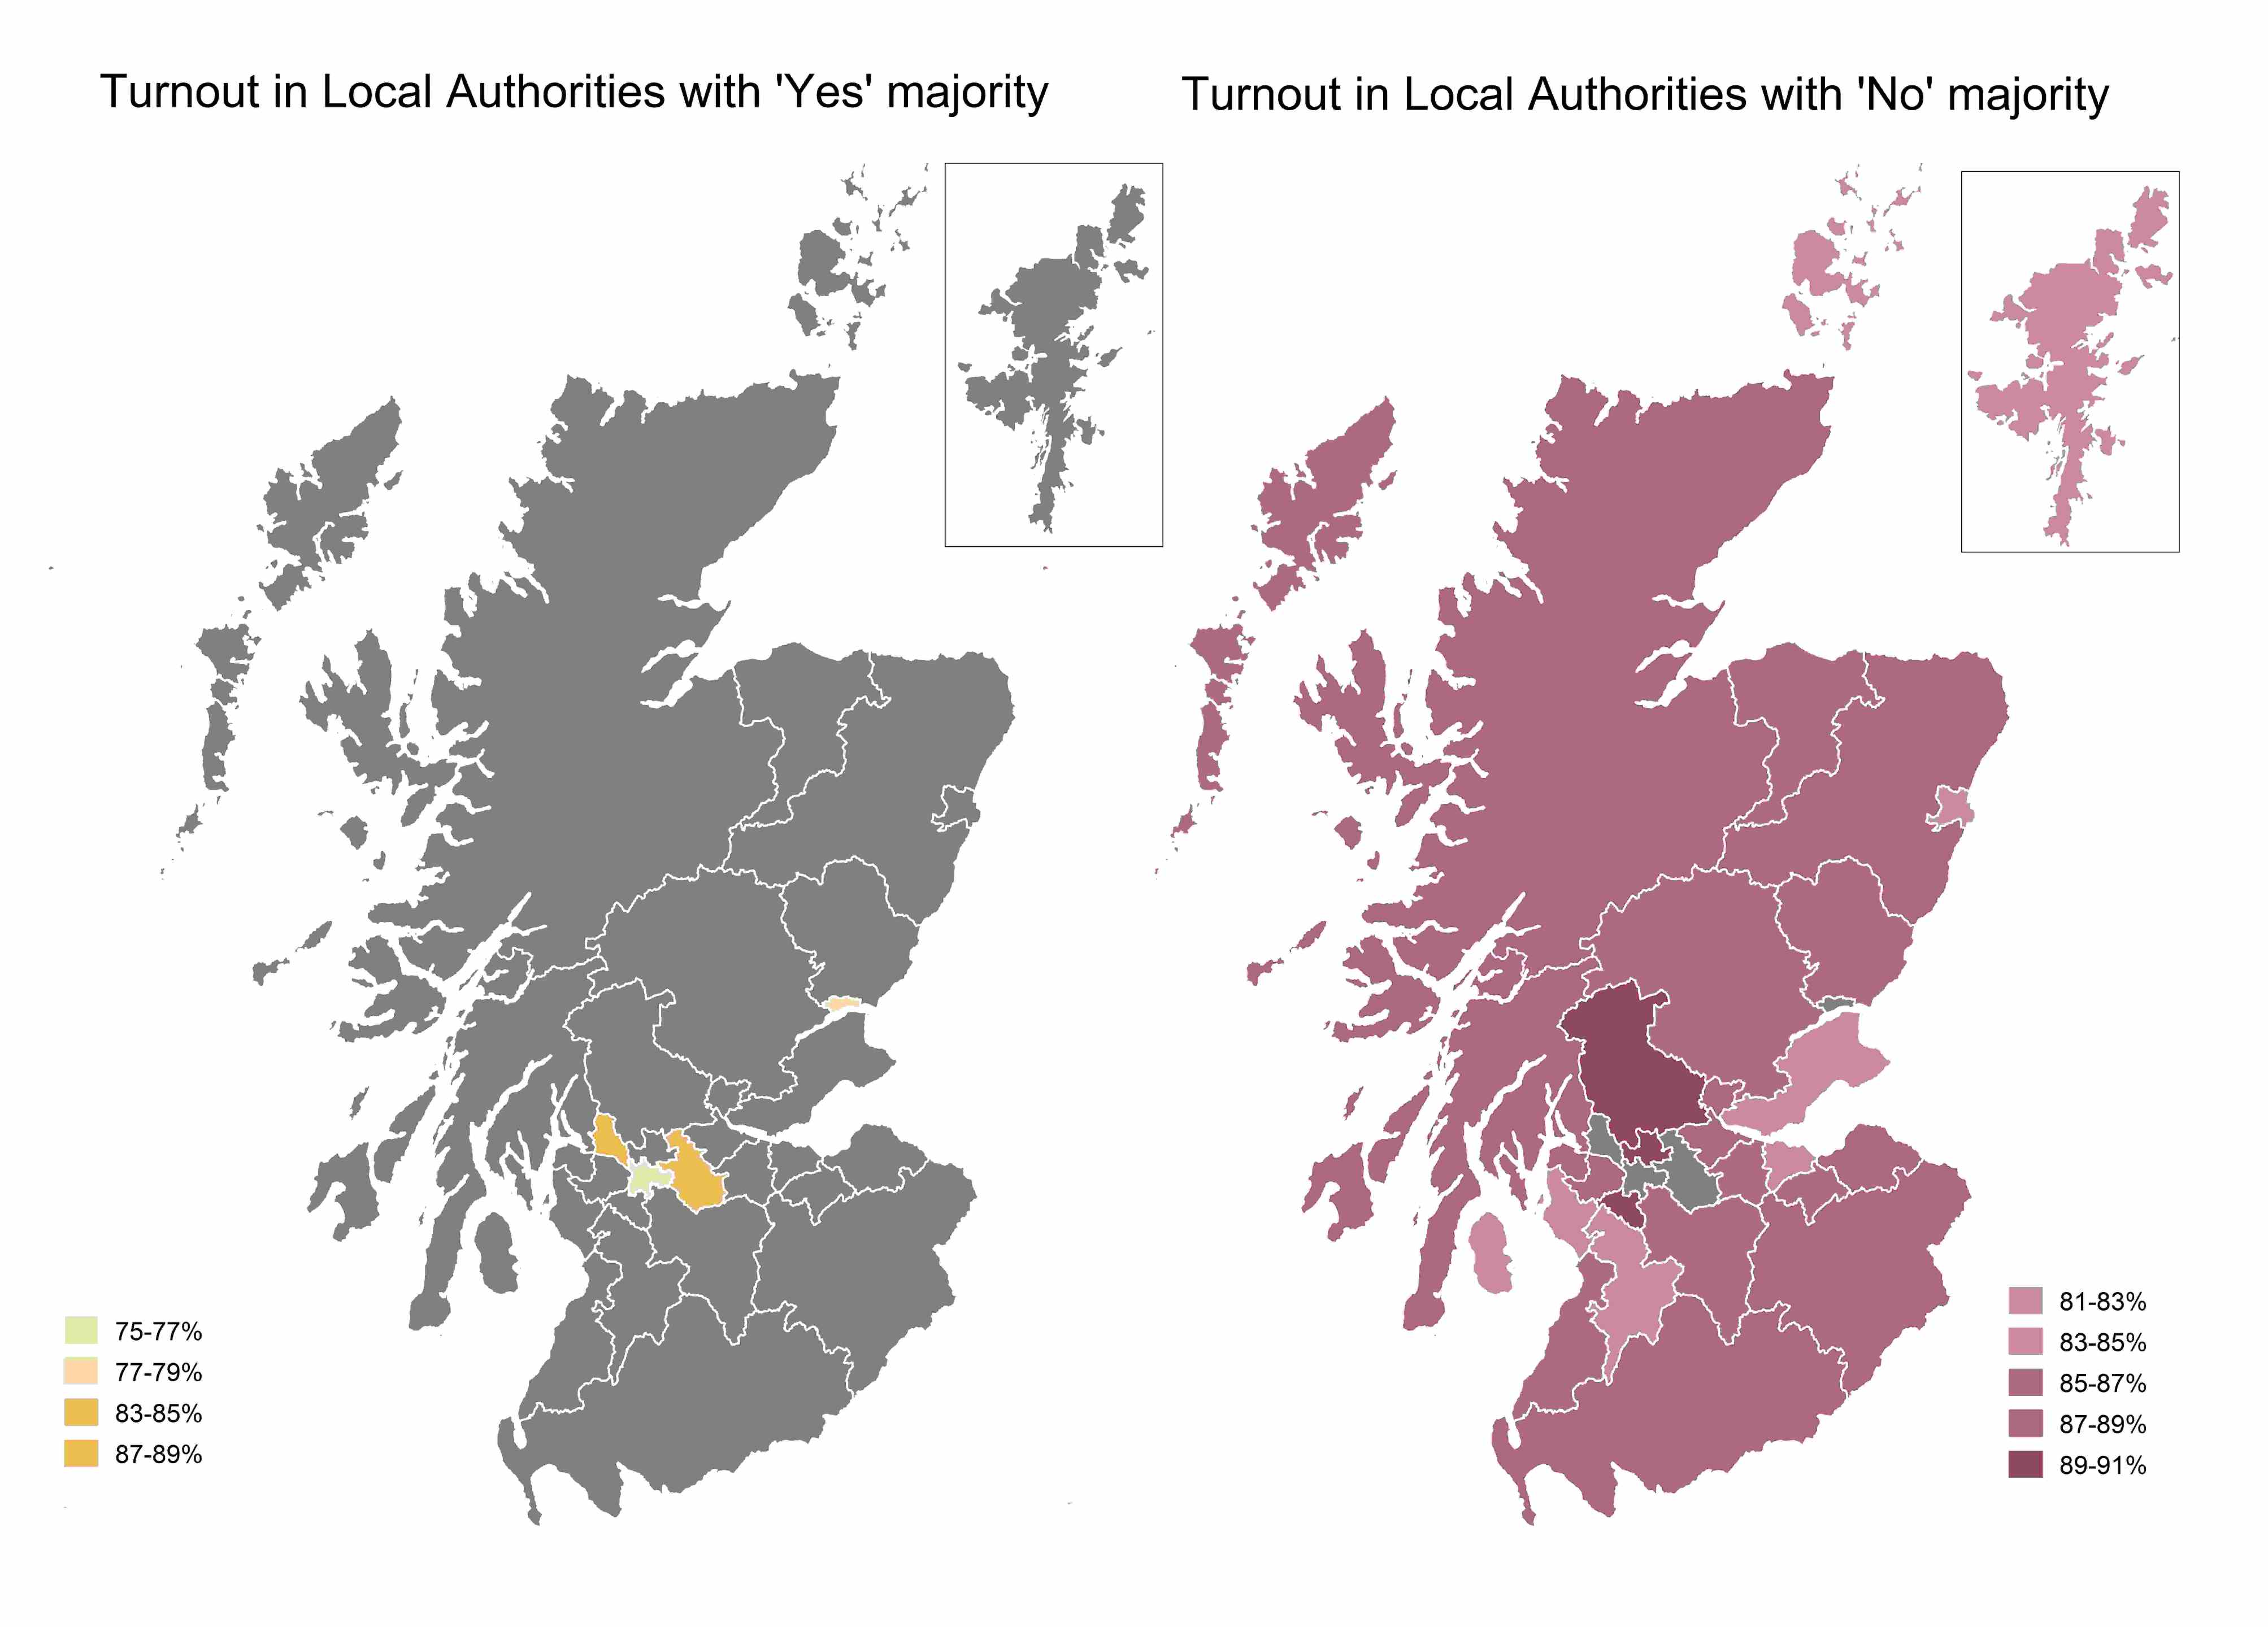 Scottish independence: What's going on in Scotland?